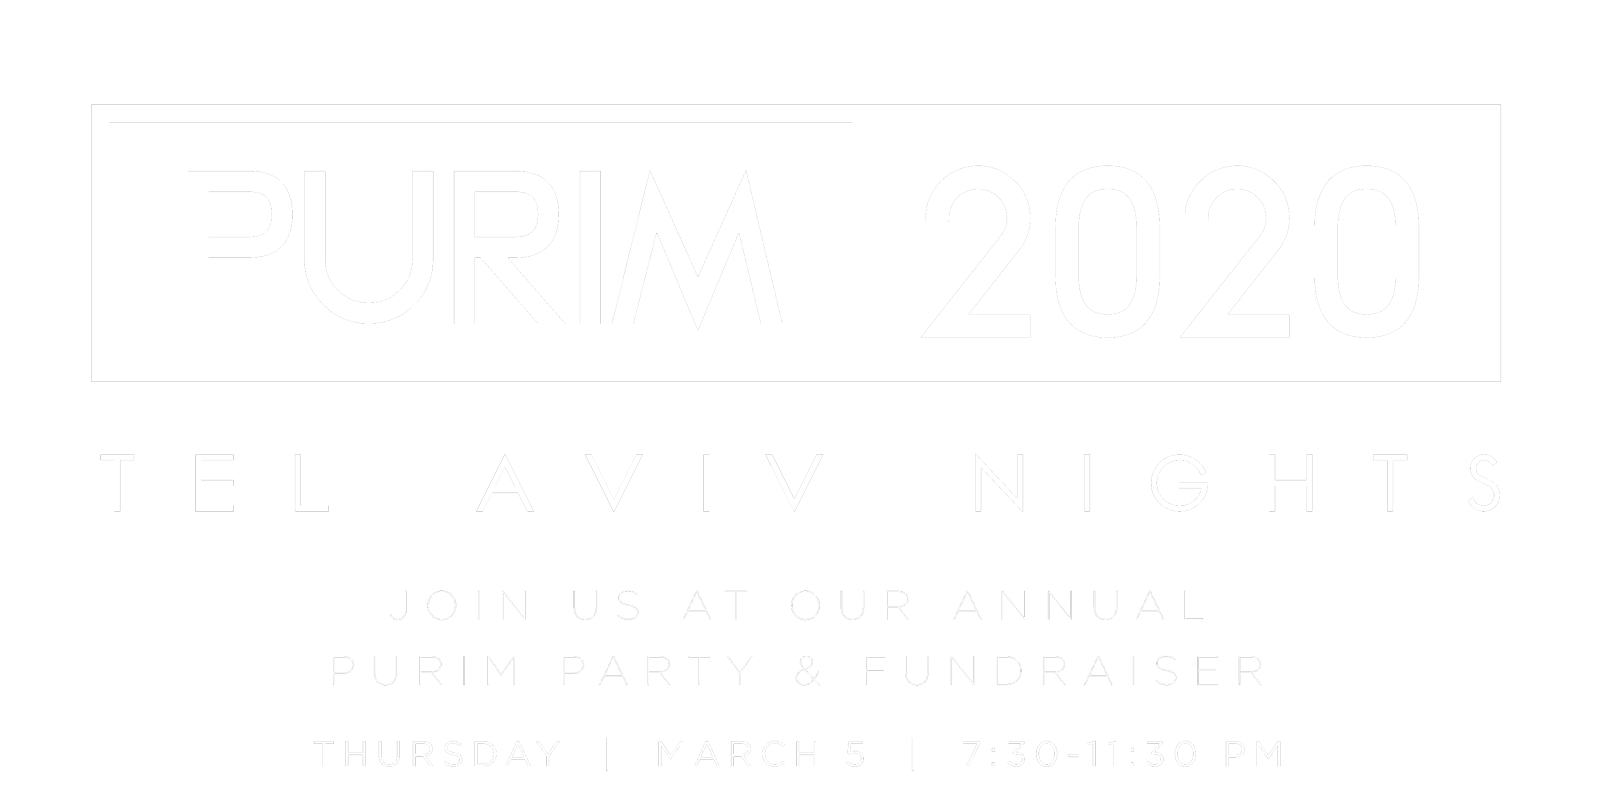 purim-fundraiser-trans2.png